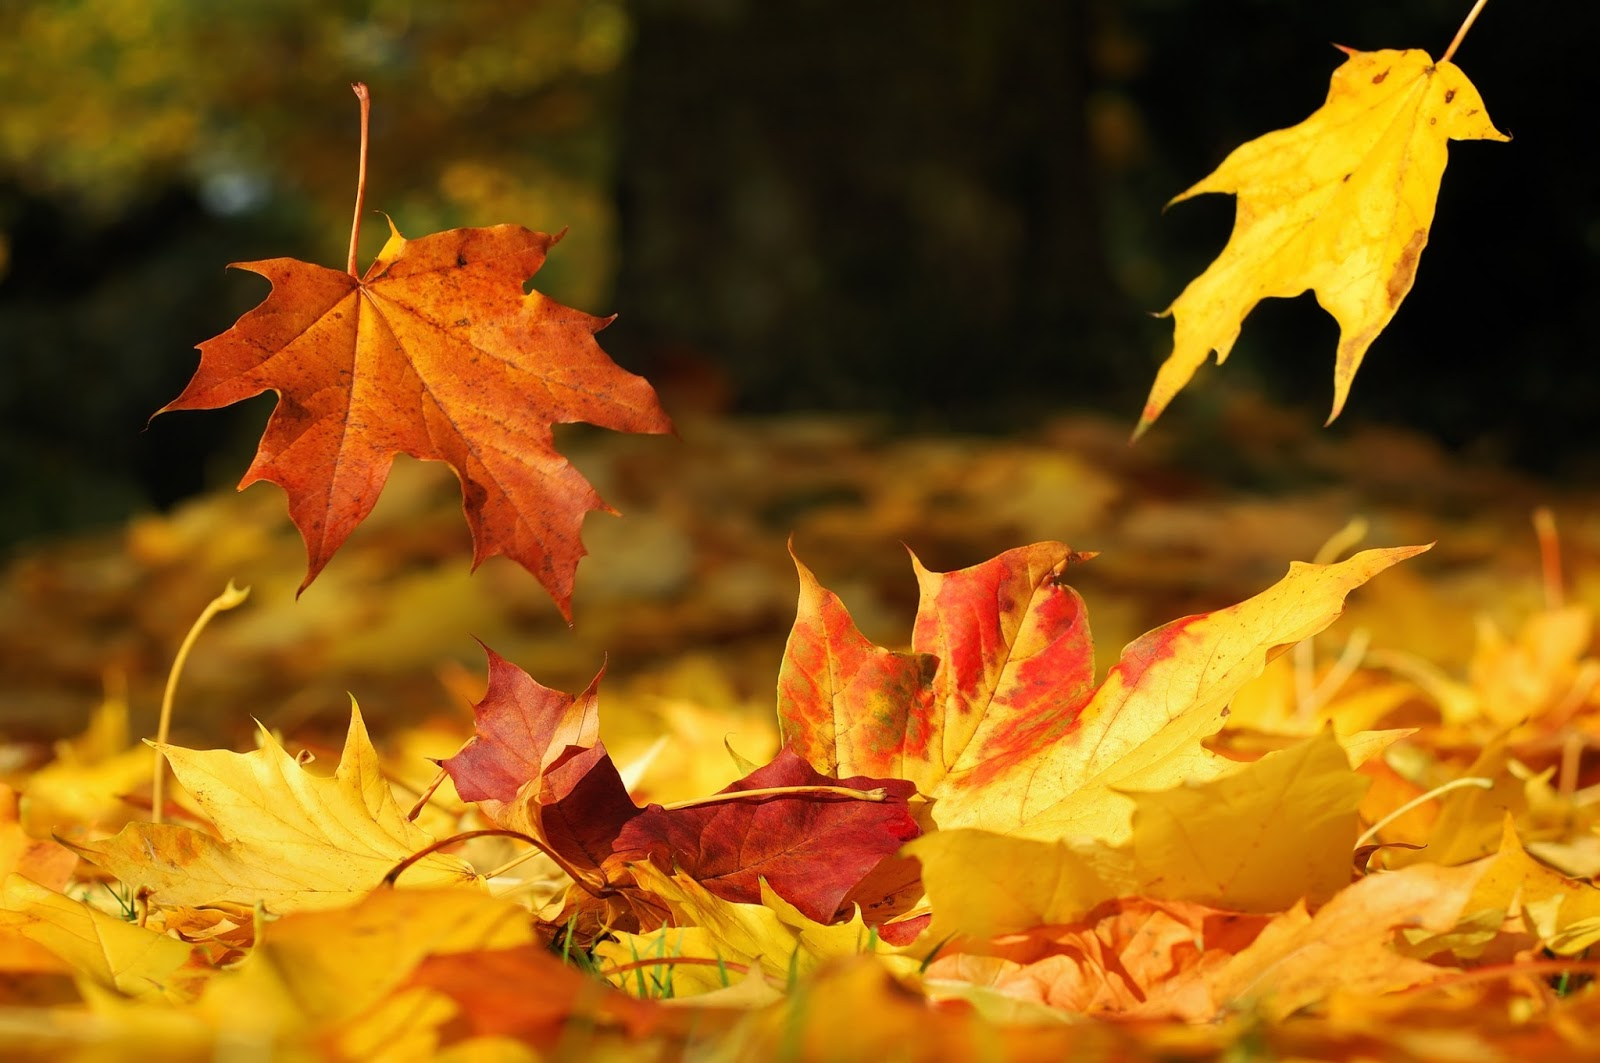 Hypnogoria: FOLKLORE ON FRIDAY - Autumn Leaves